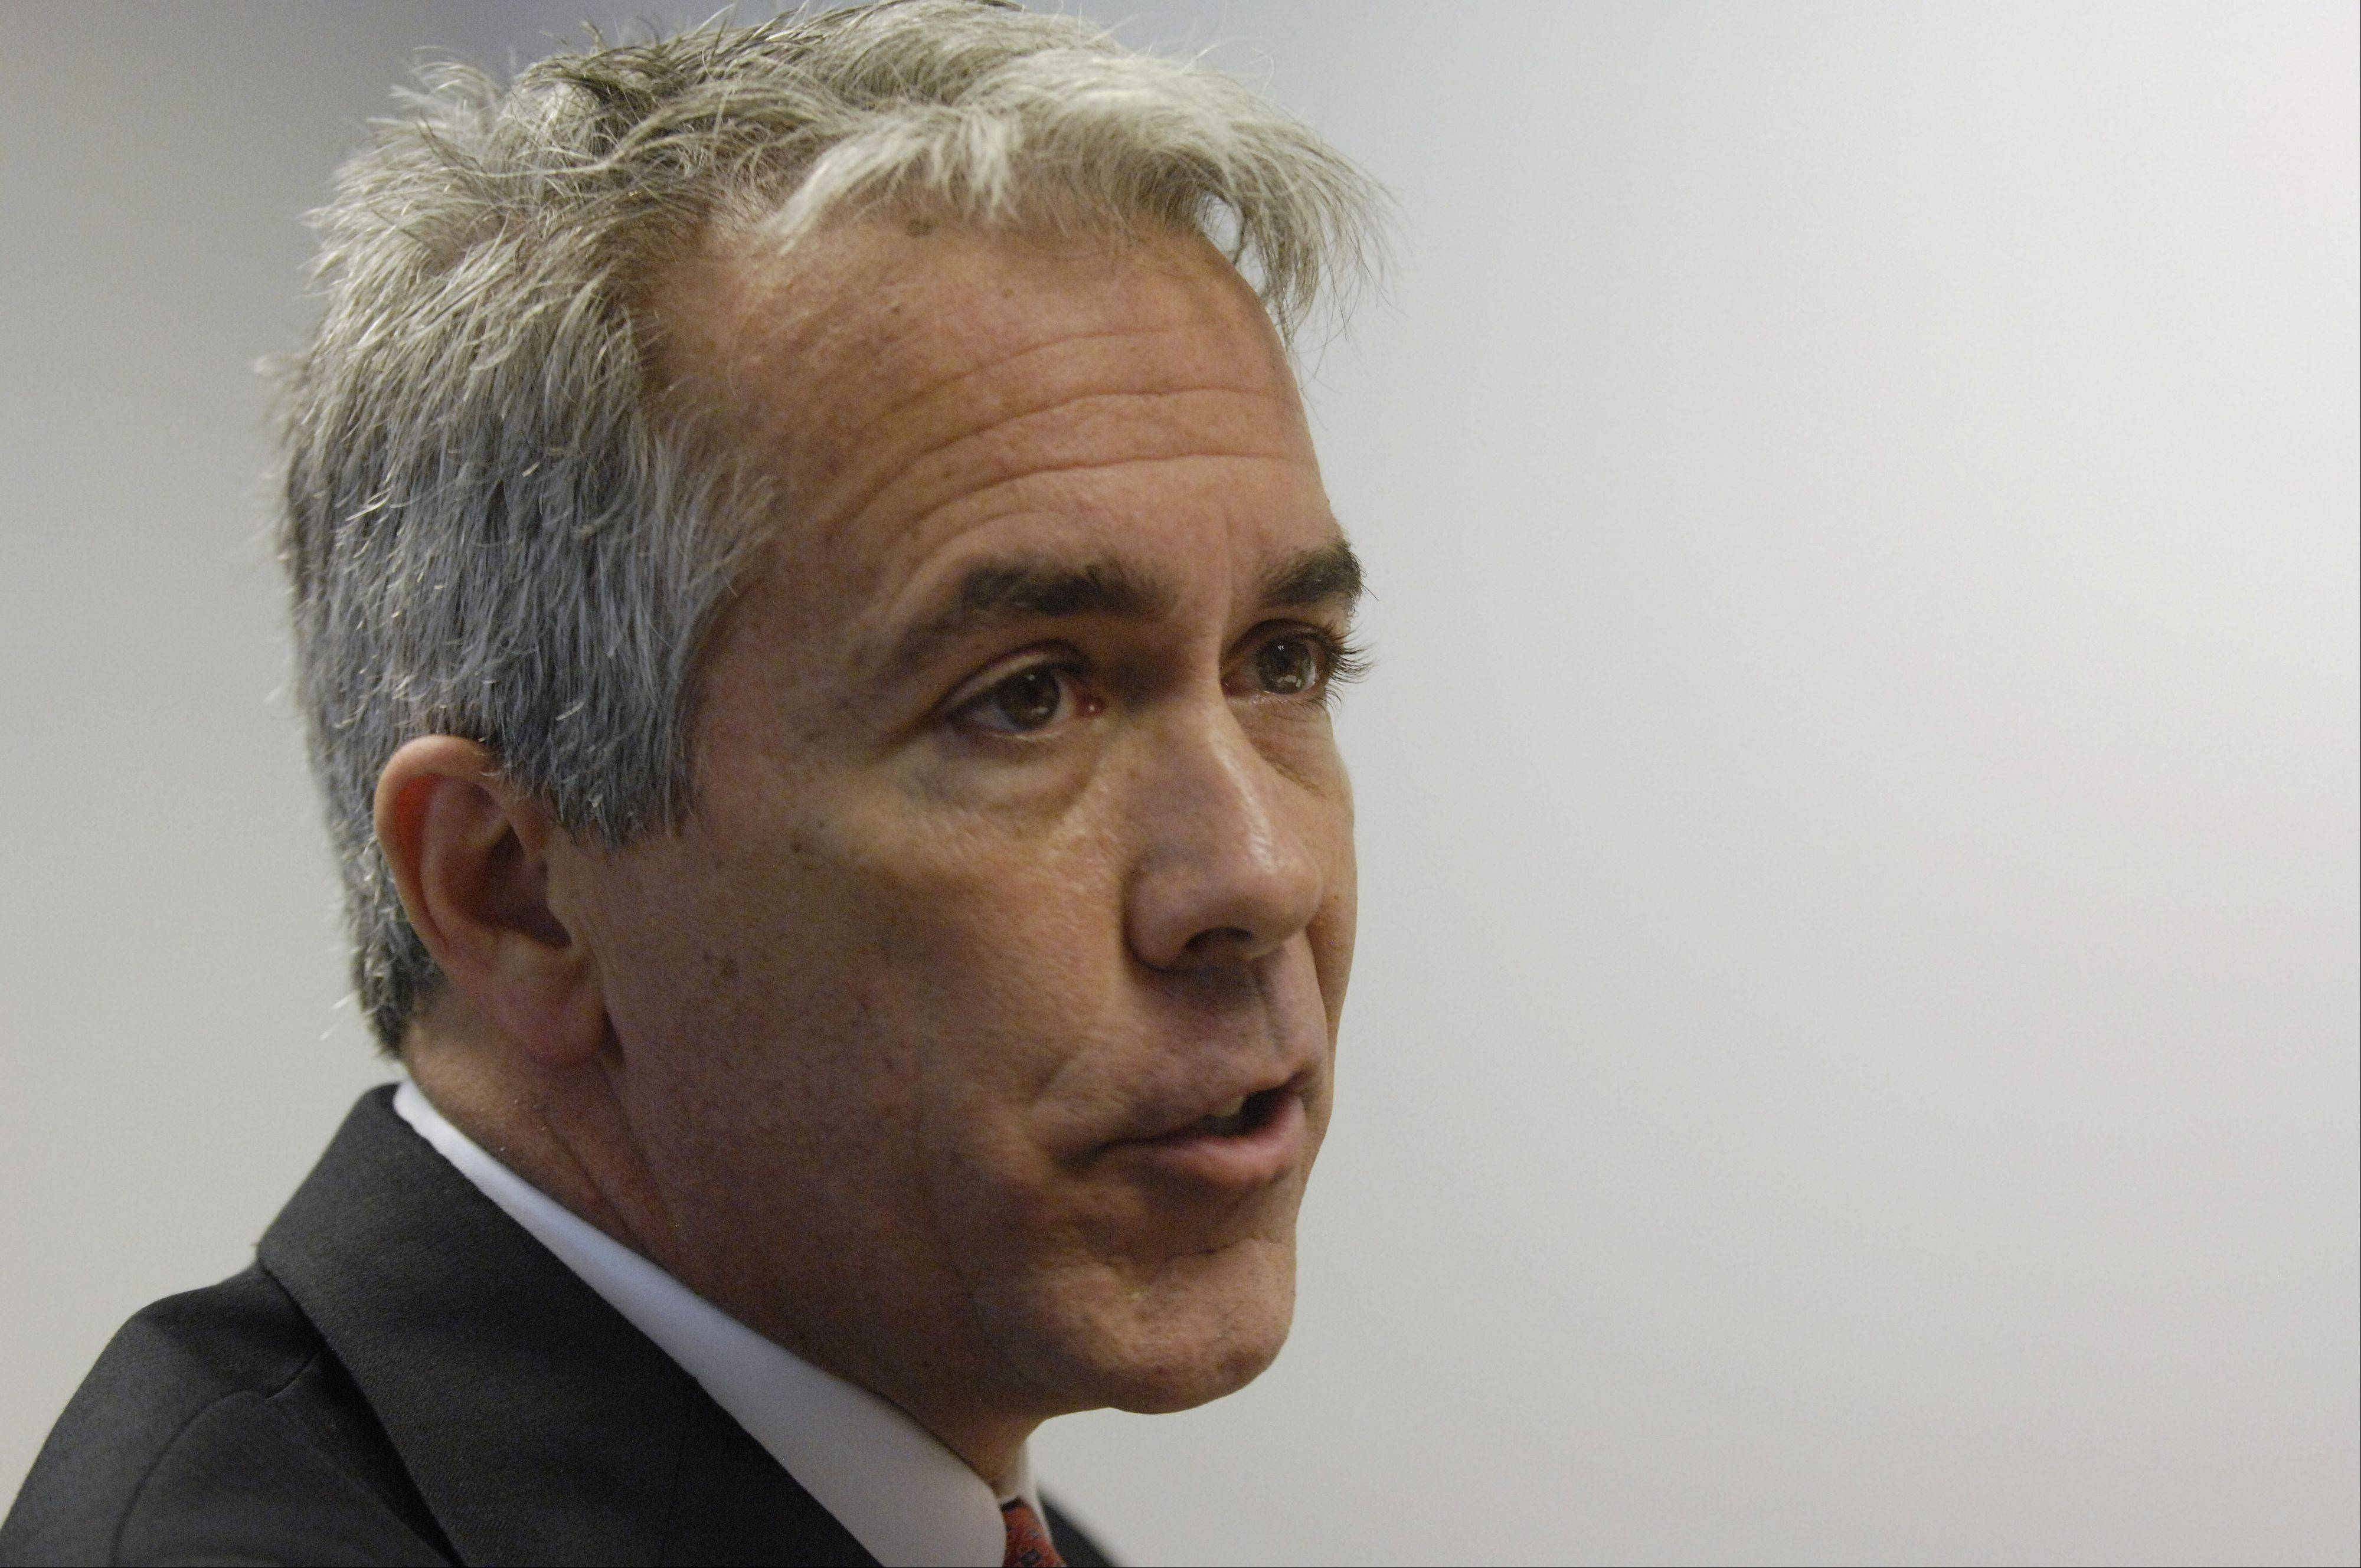 Congressman Joe Walsh, running in the new 8th District, speaks during an endorsement interview with the Daily Herald.